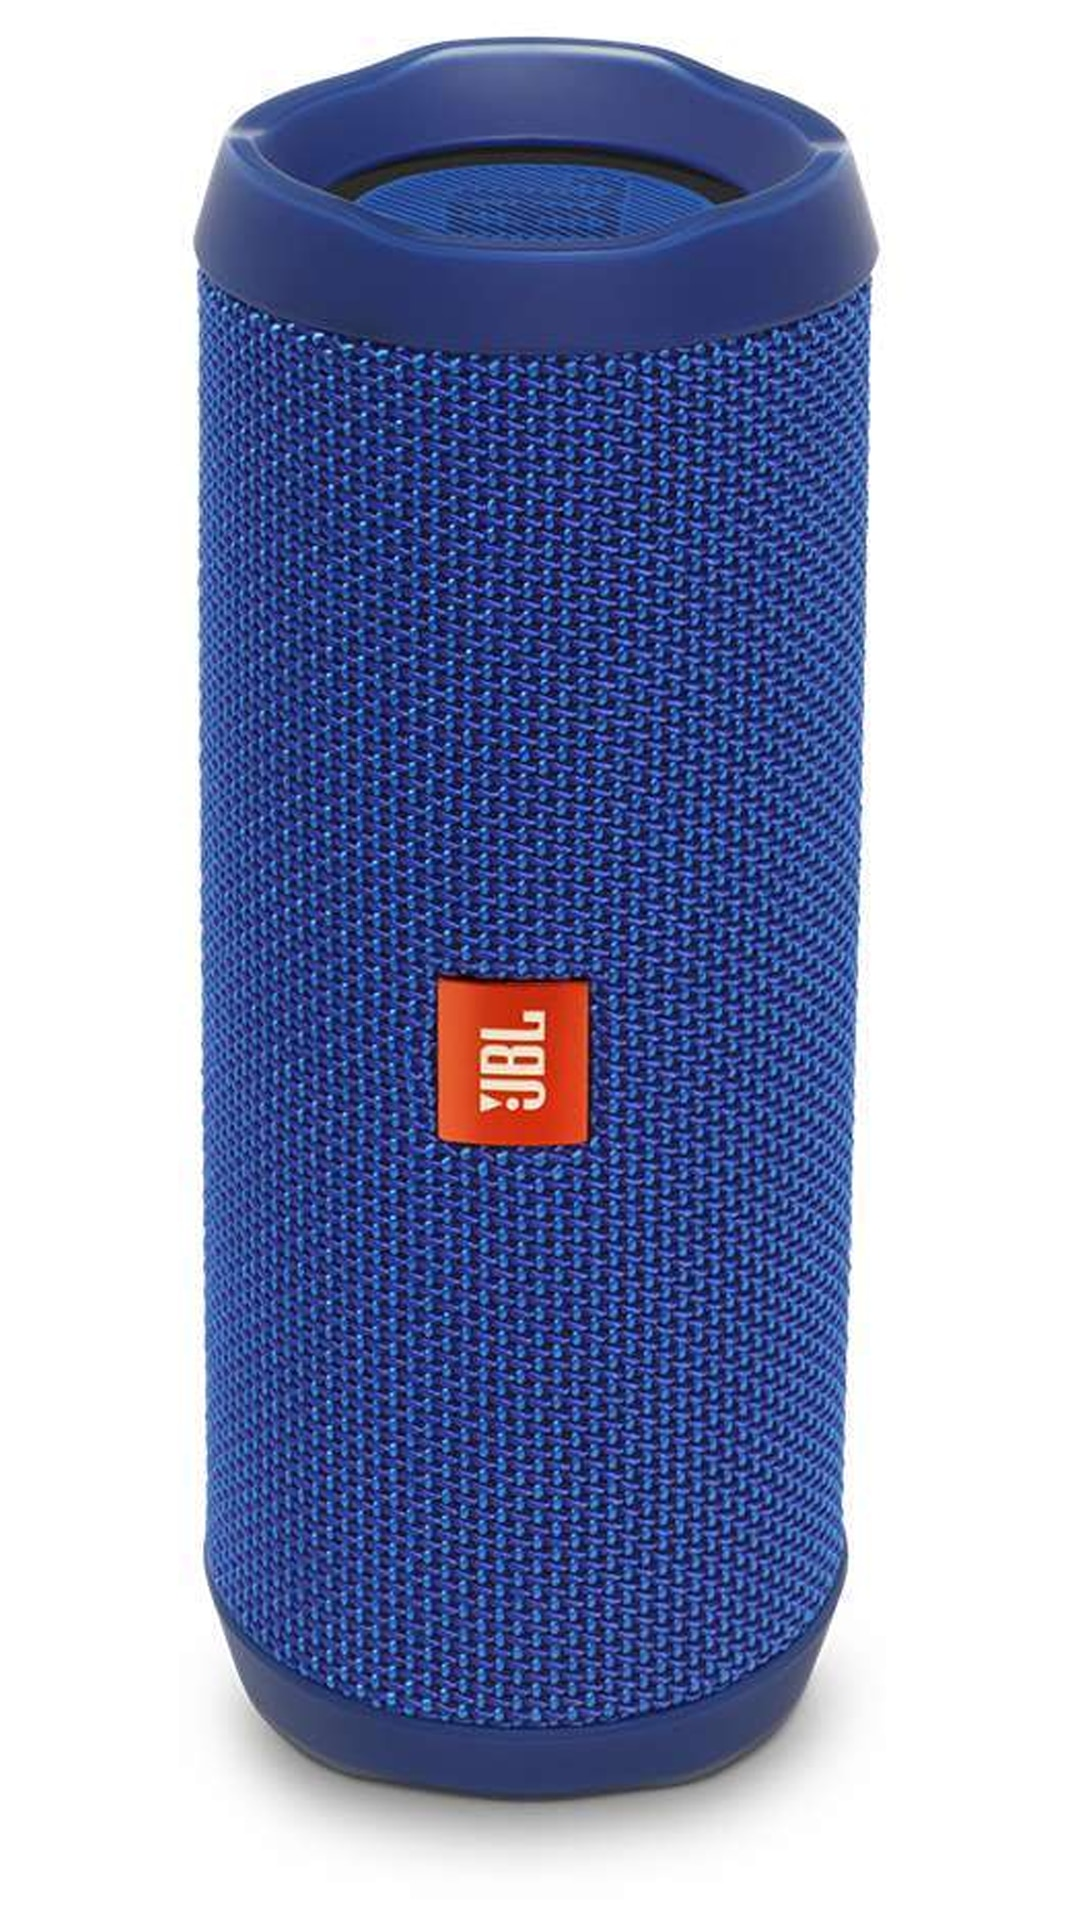 JBL Flip 4 Bluetooth Speaker (Blue)